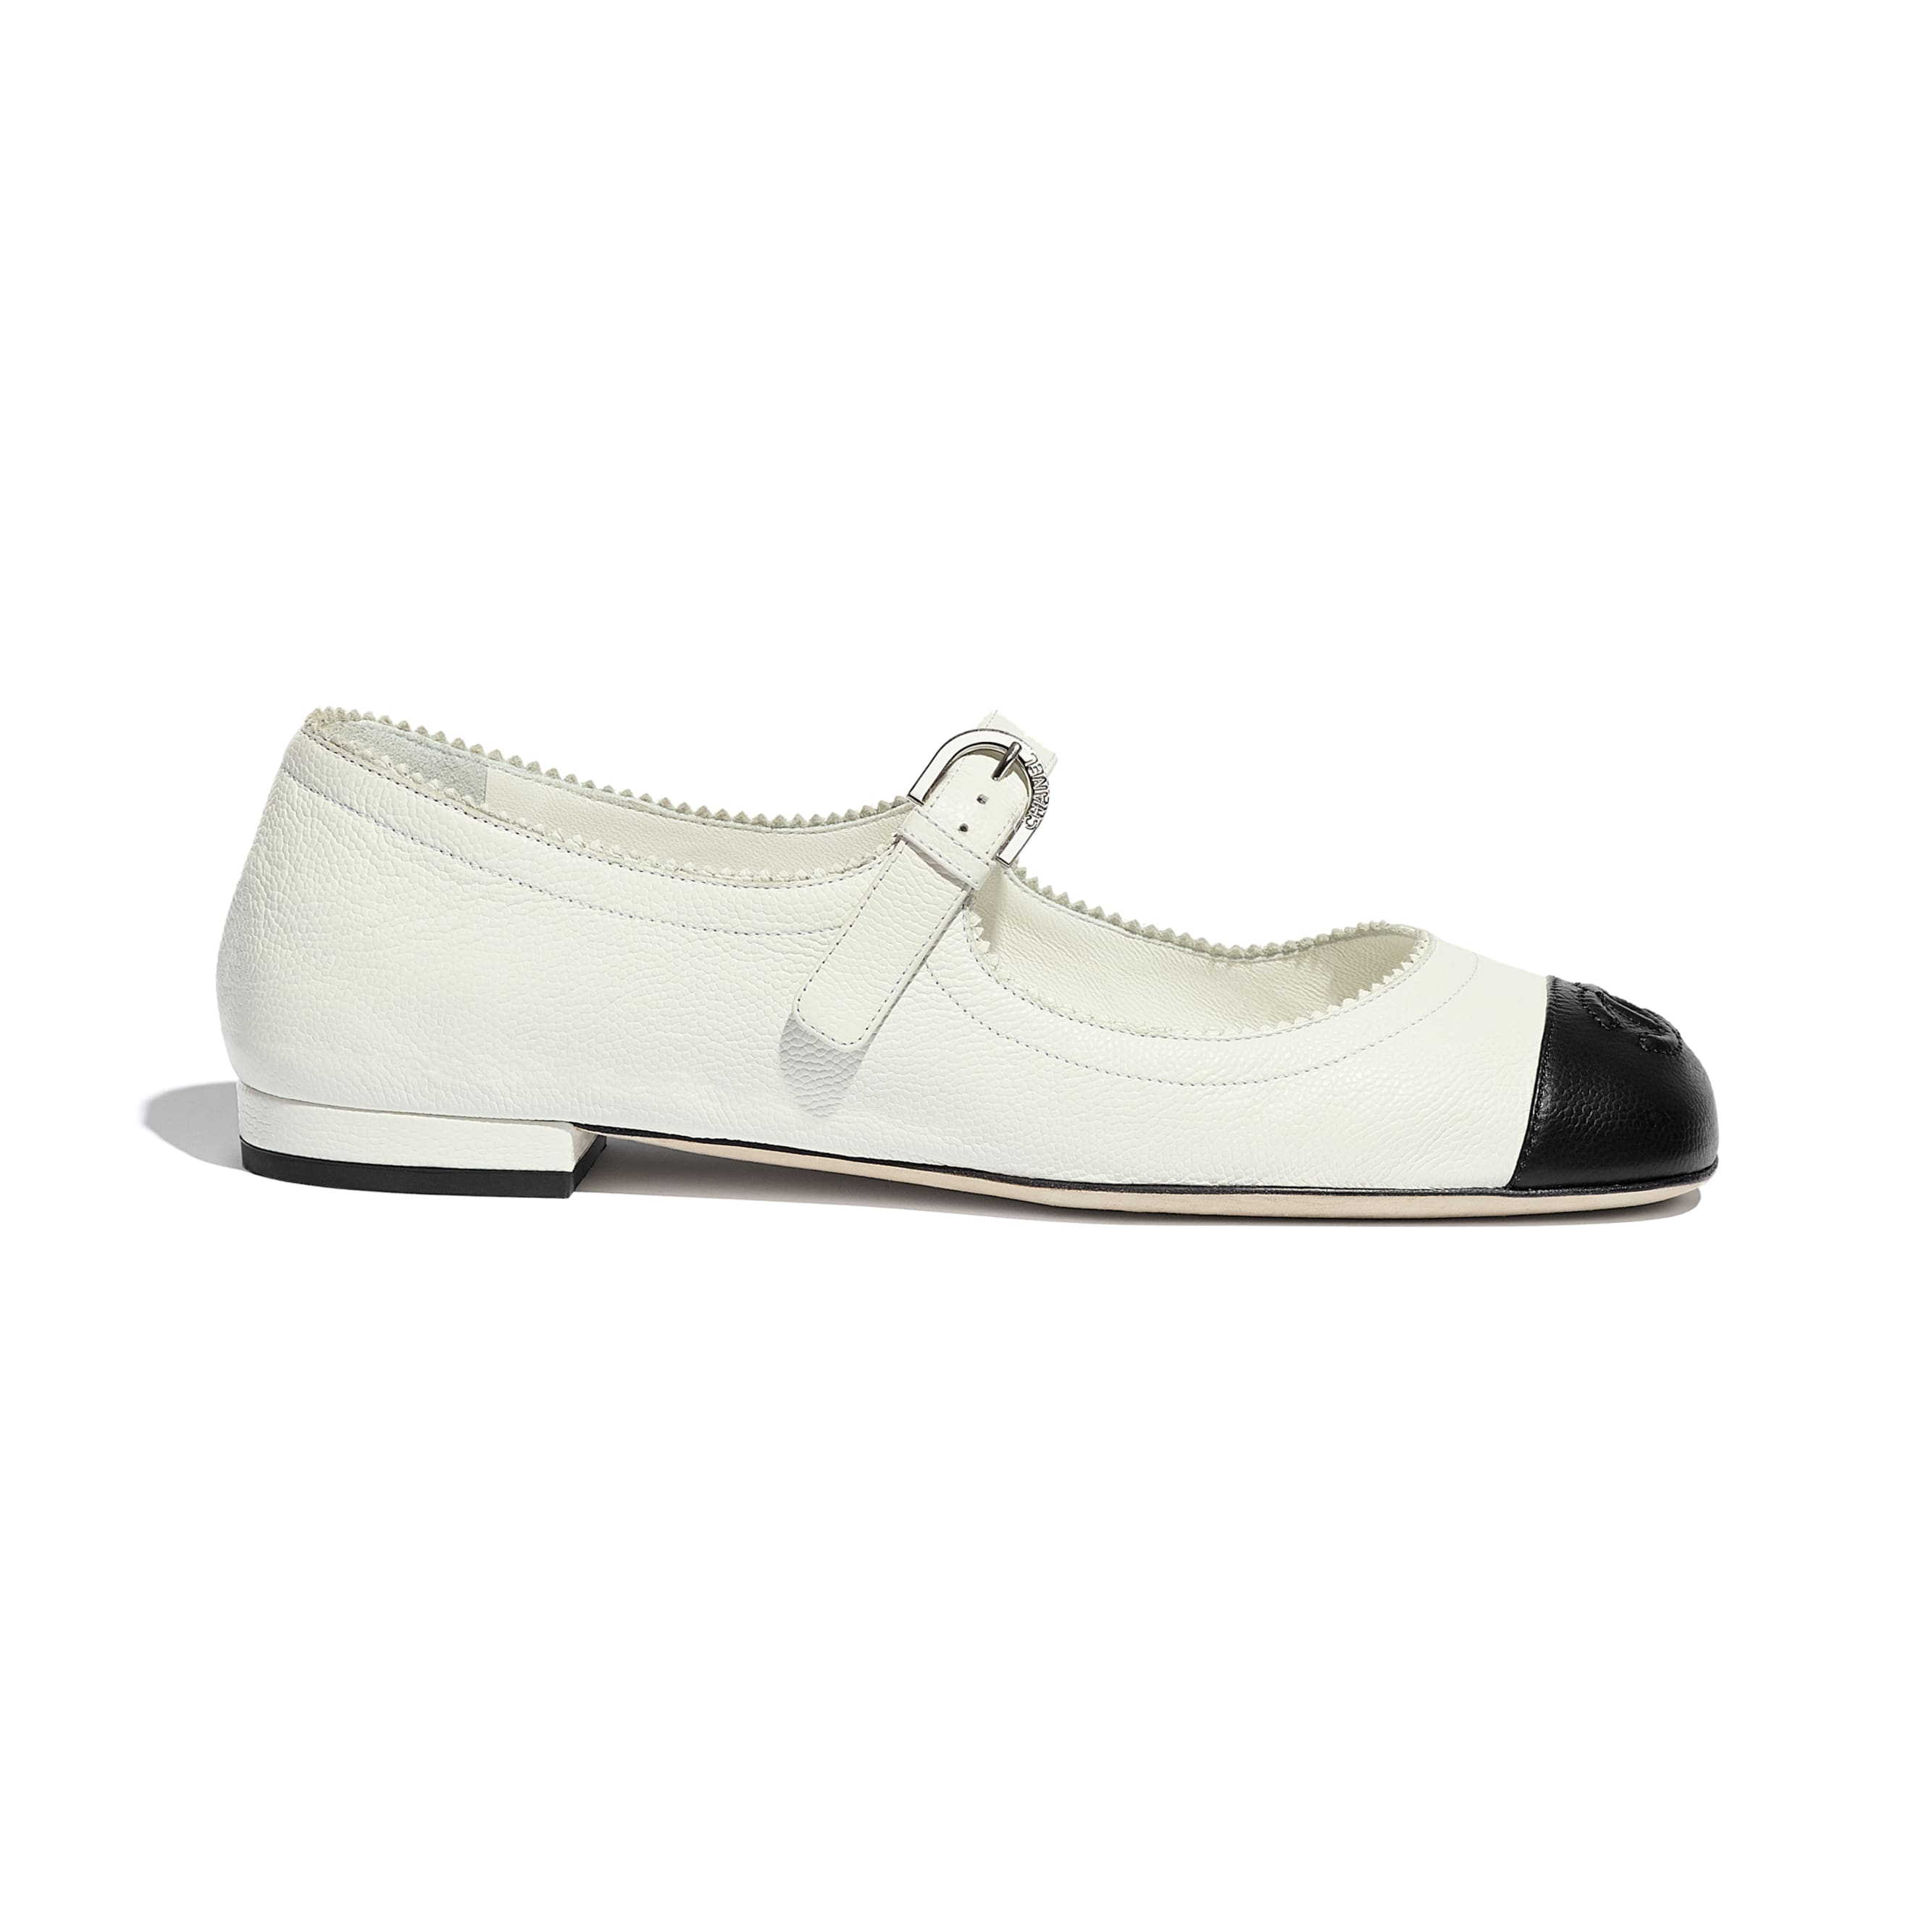 Mary Janes  - White & Black - Calfskin - CHANEL - Default view - see standard sized version